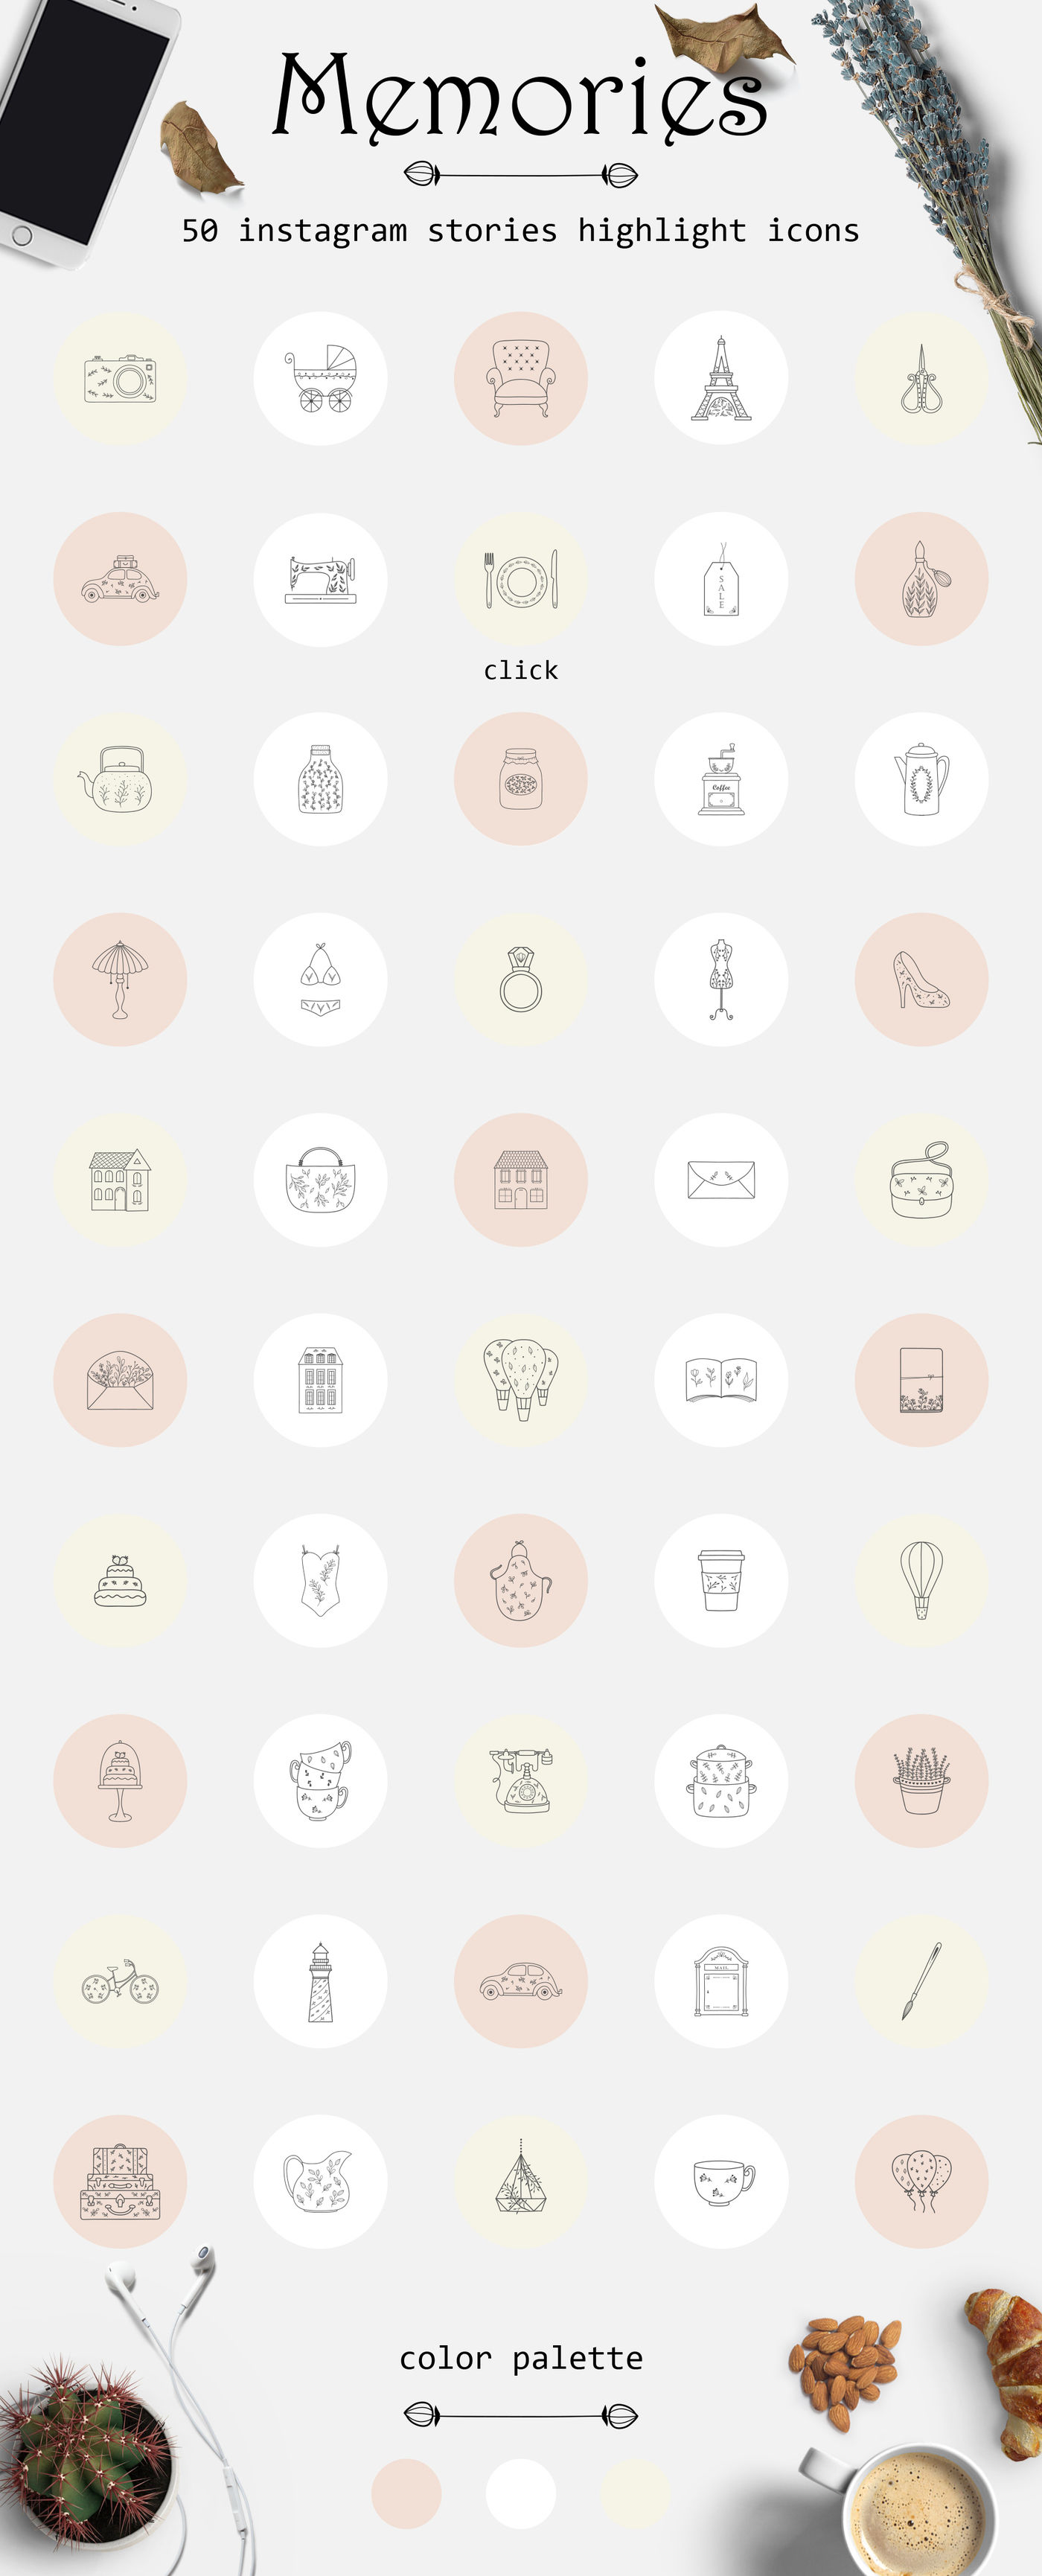 Memories Instagram Stories Highlights Icons By Natalieshop